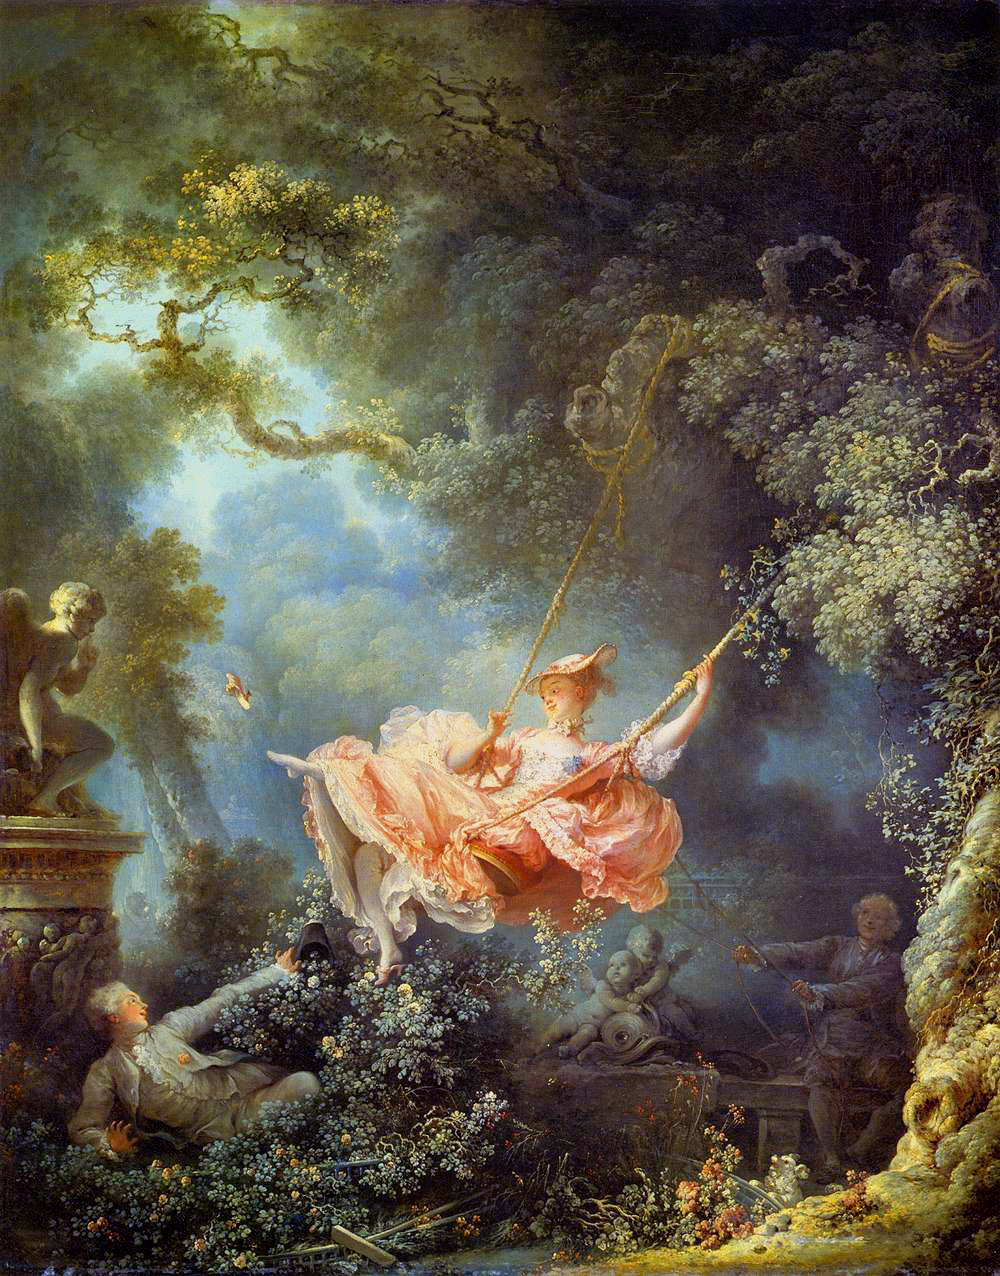 'The Swing' by Fragonard - The Wallace Collection, London. C.1767